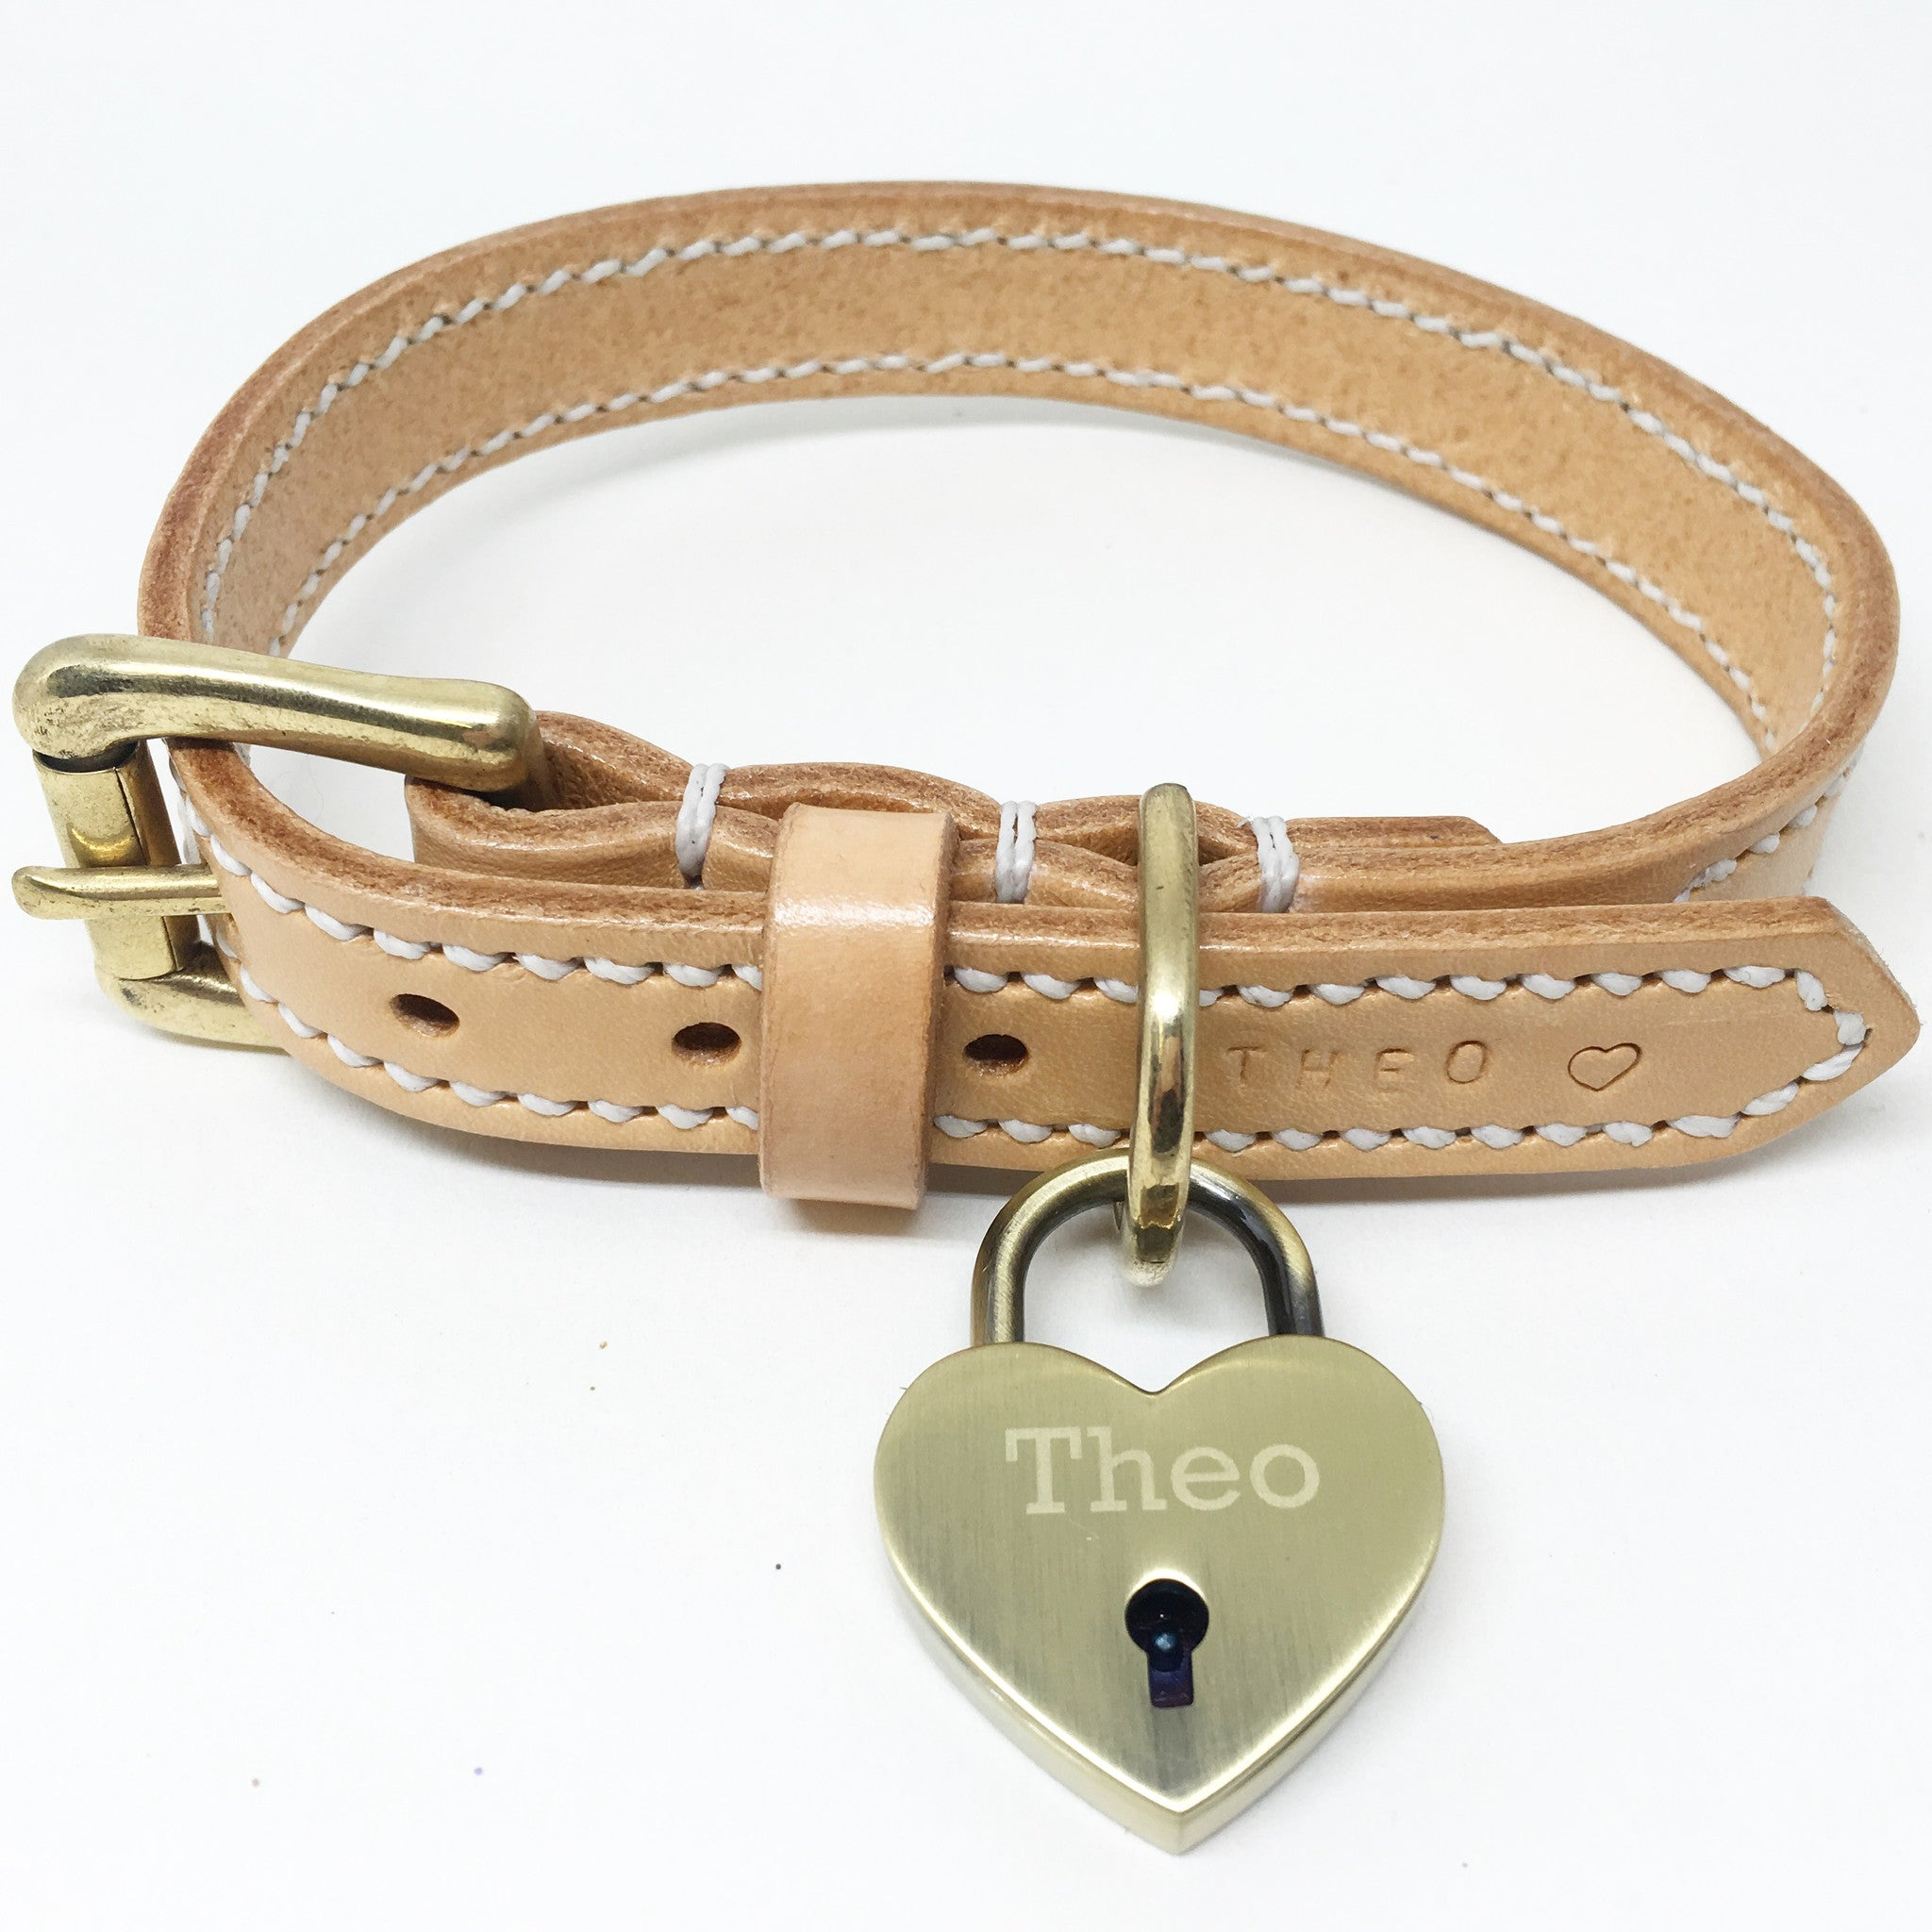 Full Stitched Natural Nude Leather Dog Collar and Lead Set